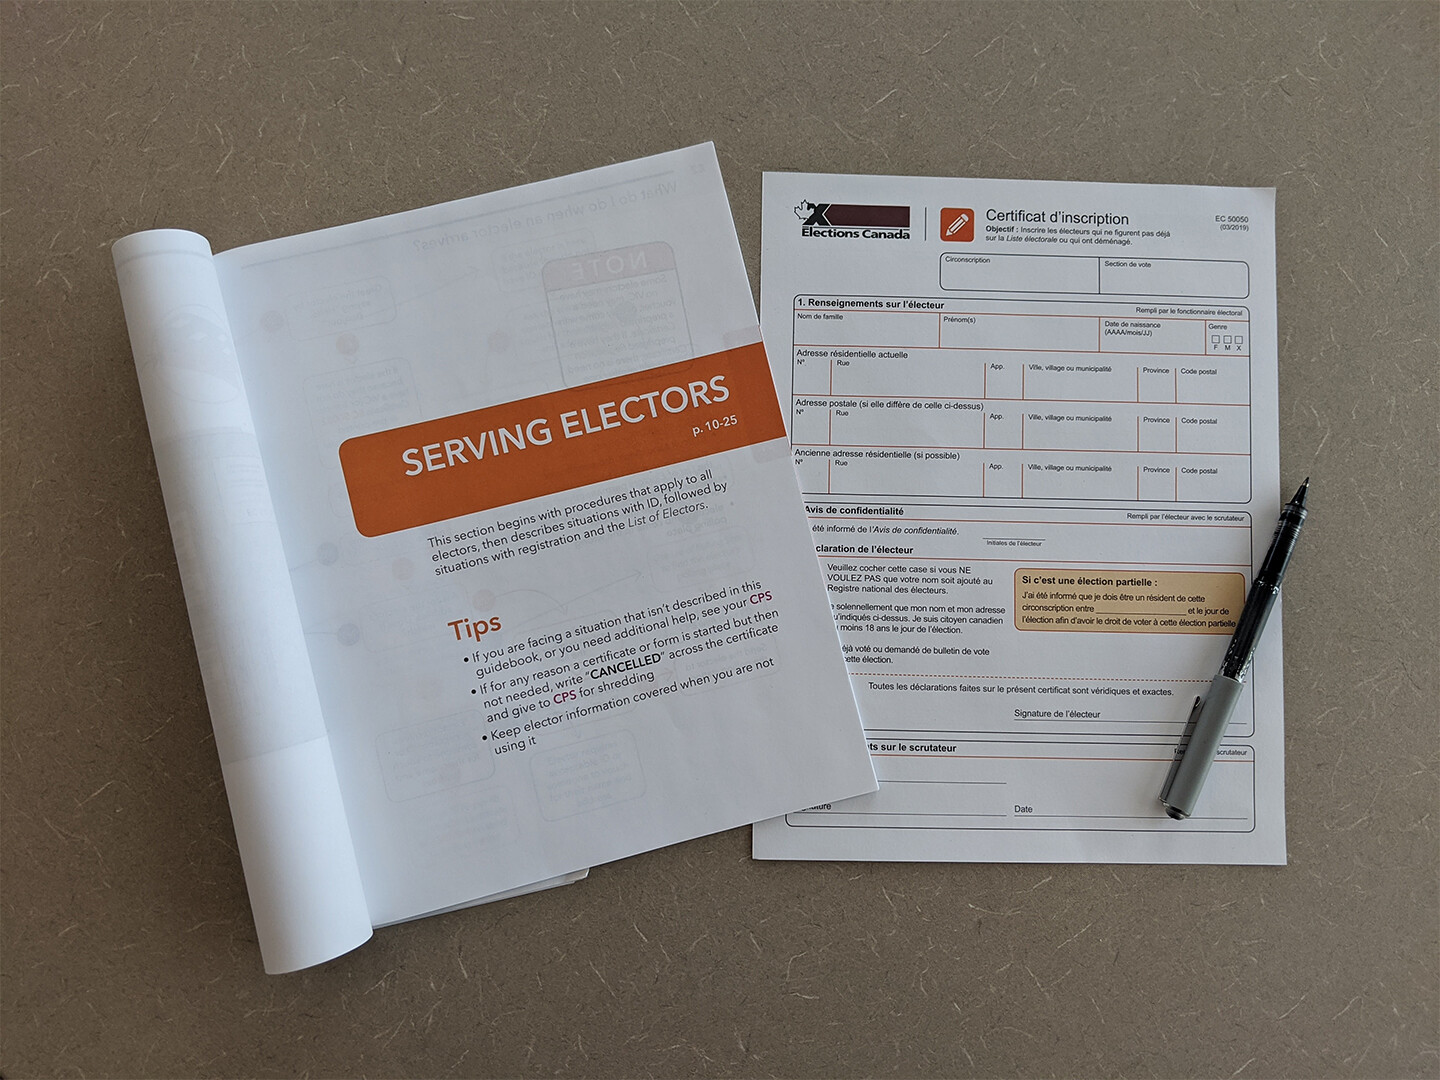 Guide and certificate in use together